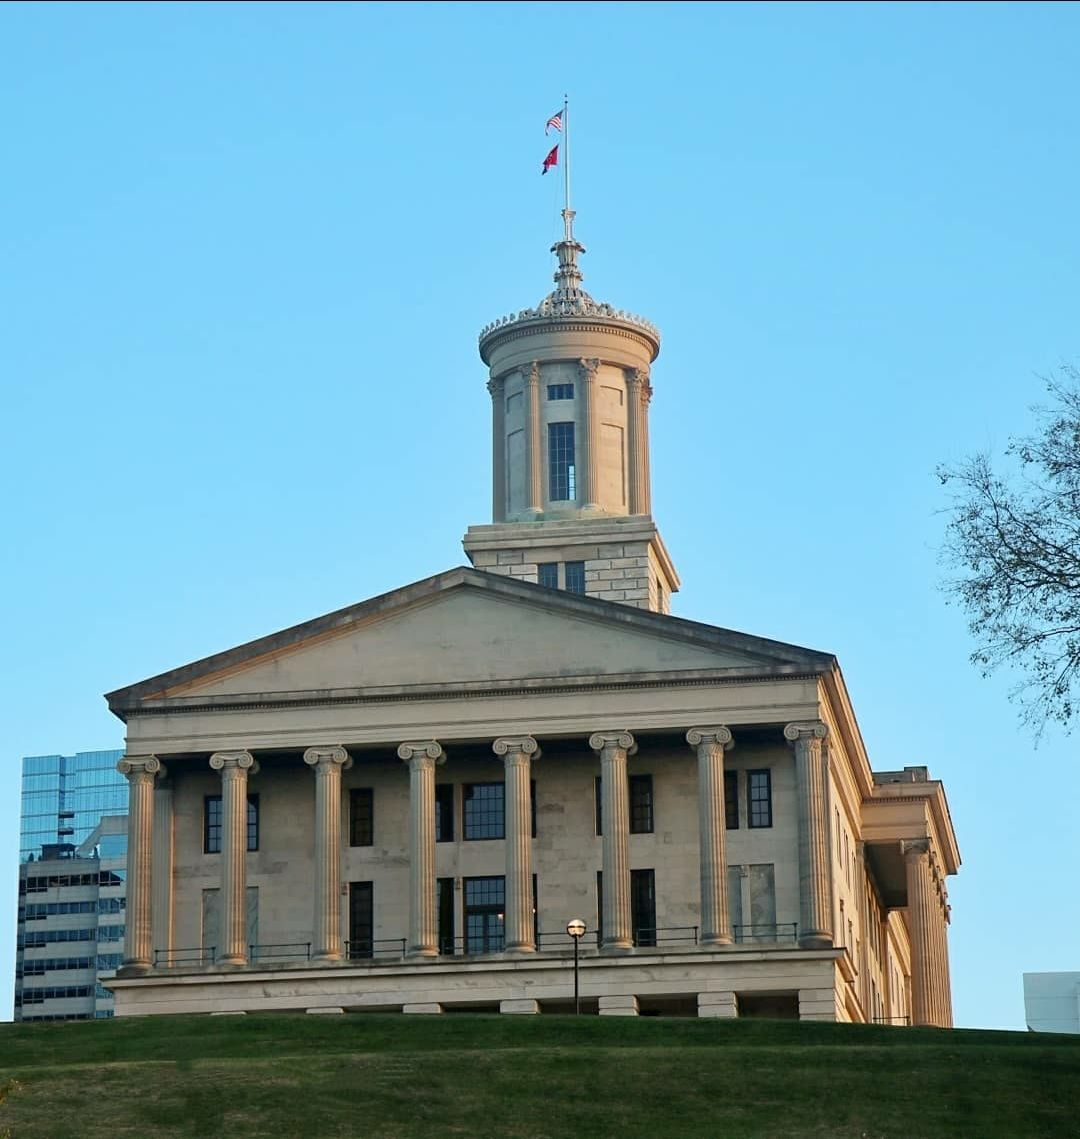 Photo of Tennessee State Capitol By Arsha Shaji